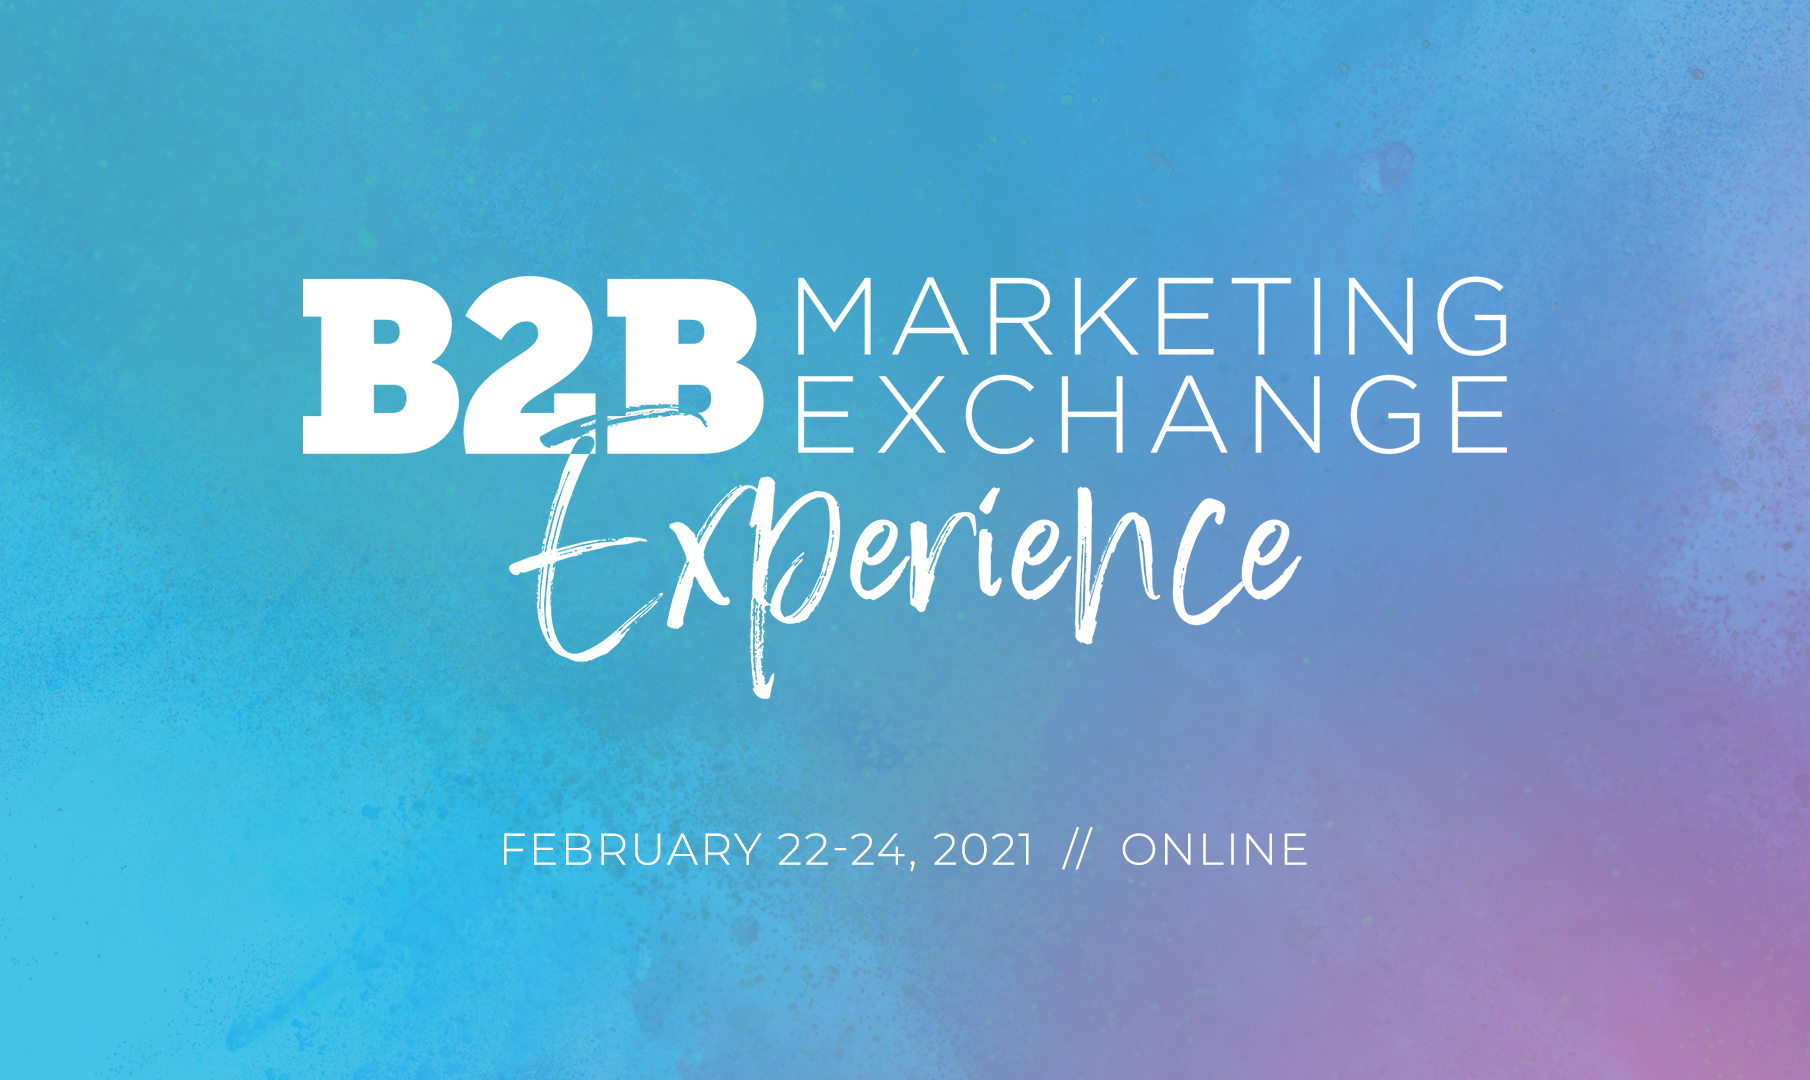 At B2BMX, Channel Experts Offer Strategies To Address Modern Partner Ecosystems And Marketplaces; Shore Up Program Basics